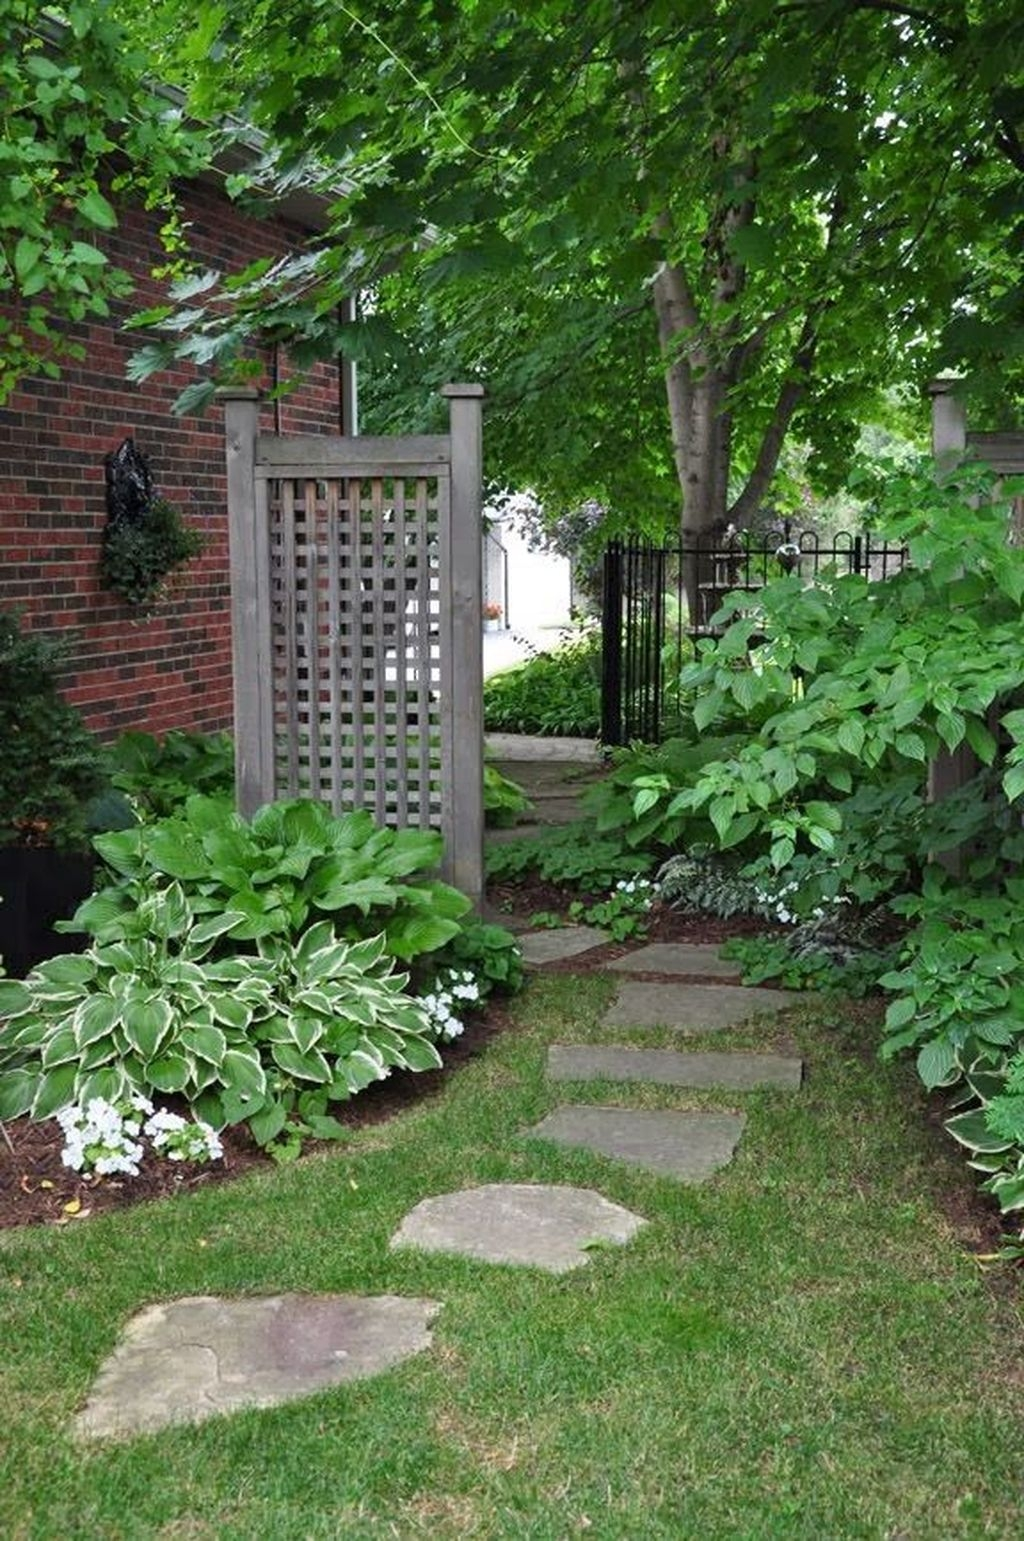 Inspiring Stepping Stone Pathway Decor Ideas For Your Garden06